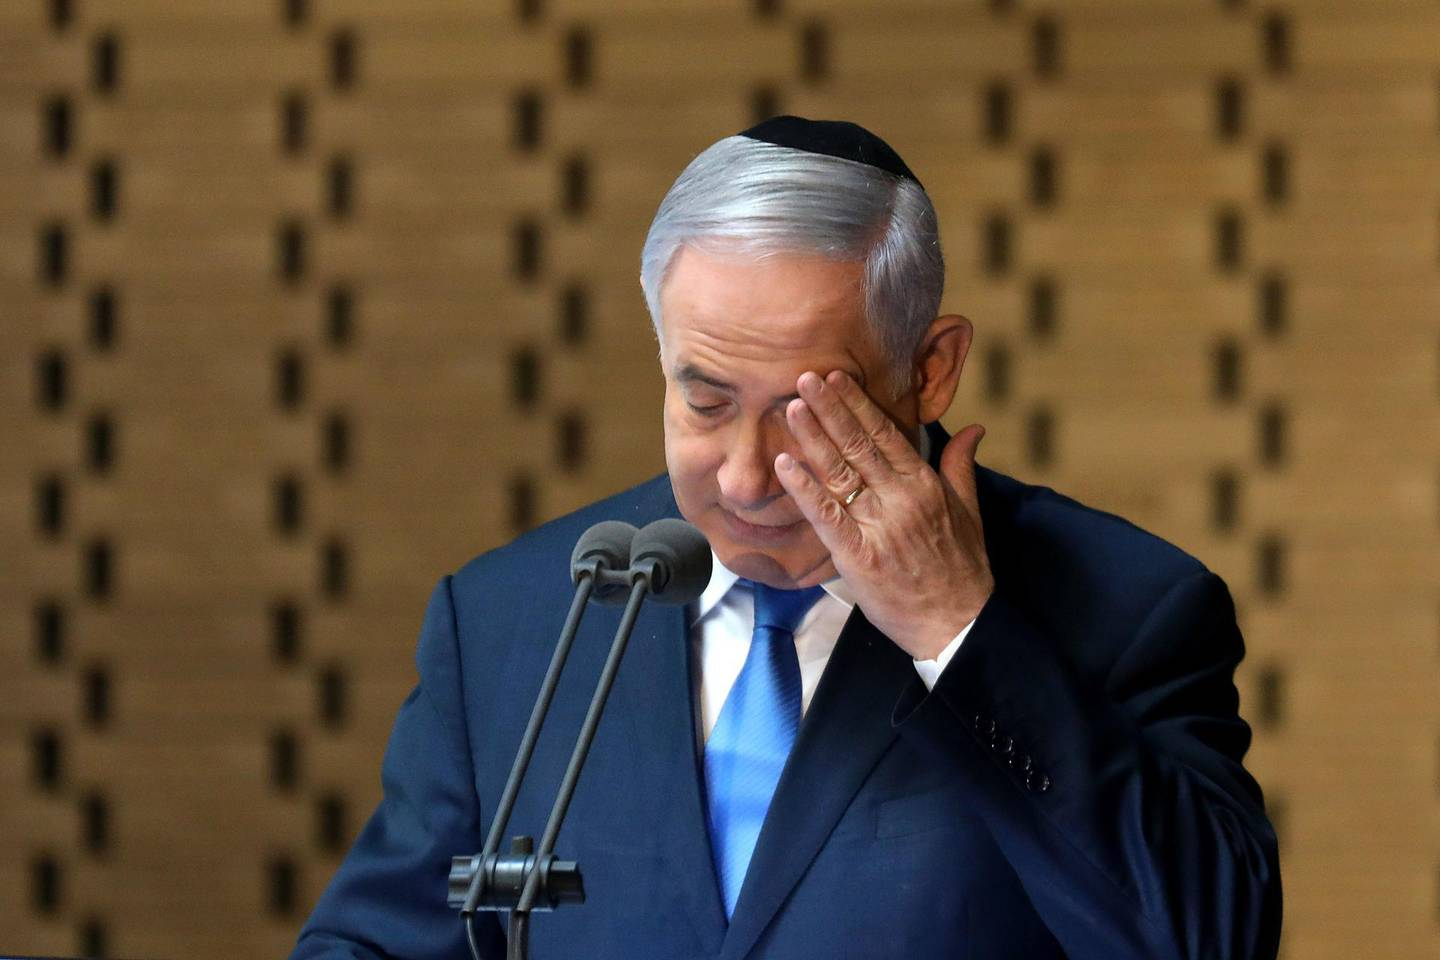 Israeli Prime Minister Benjamin Netanyahu delivers a speech at the state memorial ceremony for the fallen soldiers of the 1973 Yom Kippur War, at the Hall of Remembrance on Mt. Herzl in Jerusalem on October 10, 2019. / AFP / GALI TIBBON